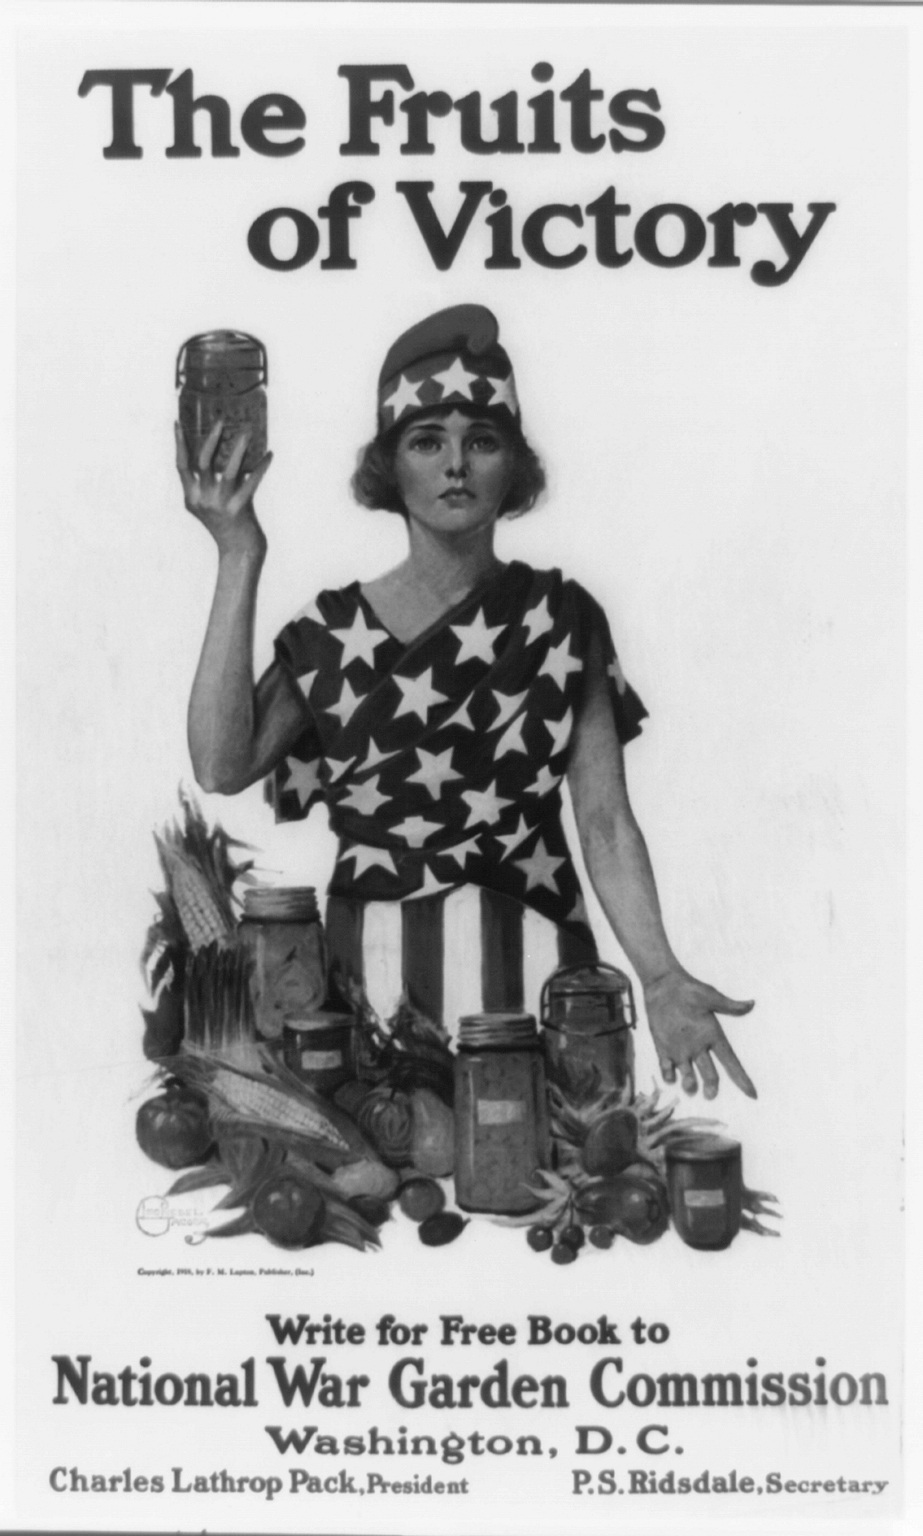 """World War II poster featuring and a woman wrapped in an American flag dress and gesturing to canned produce. Bottom of mimage says """"Write for Free book to National War Garden Commission."""""""